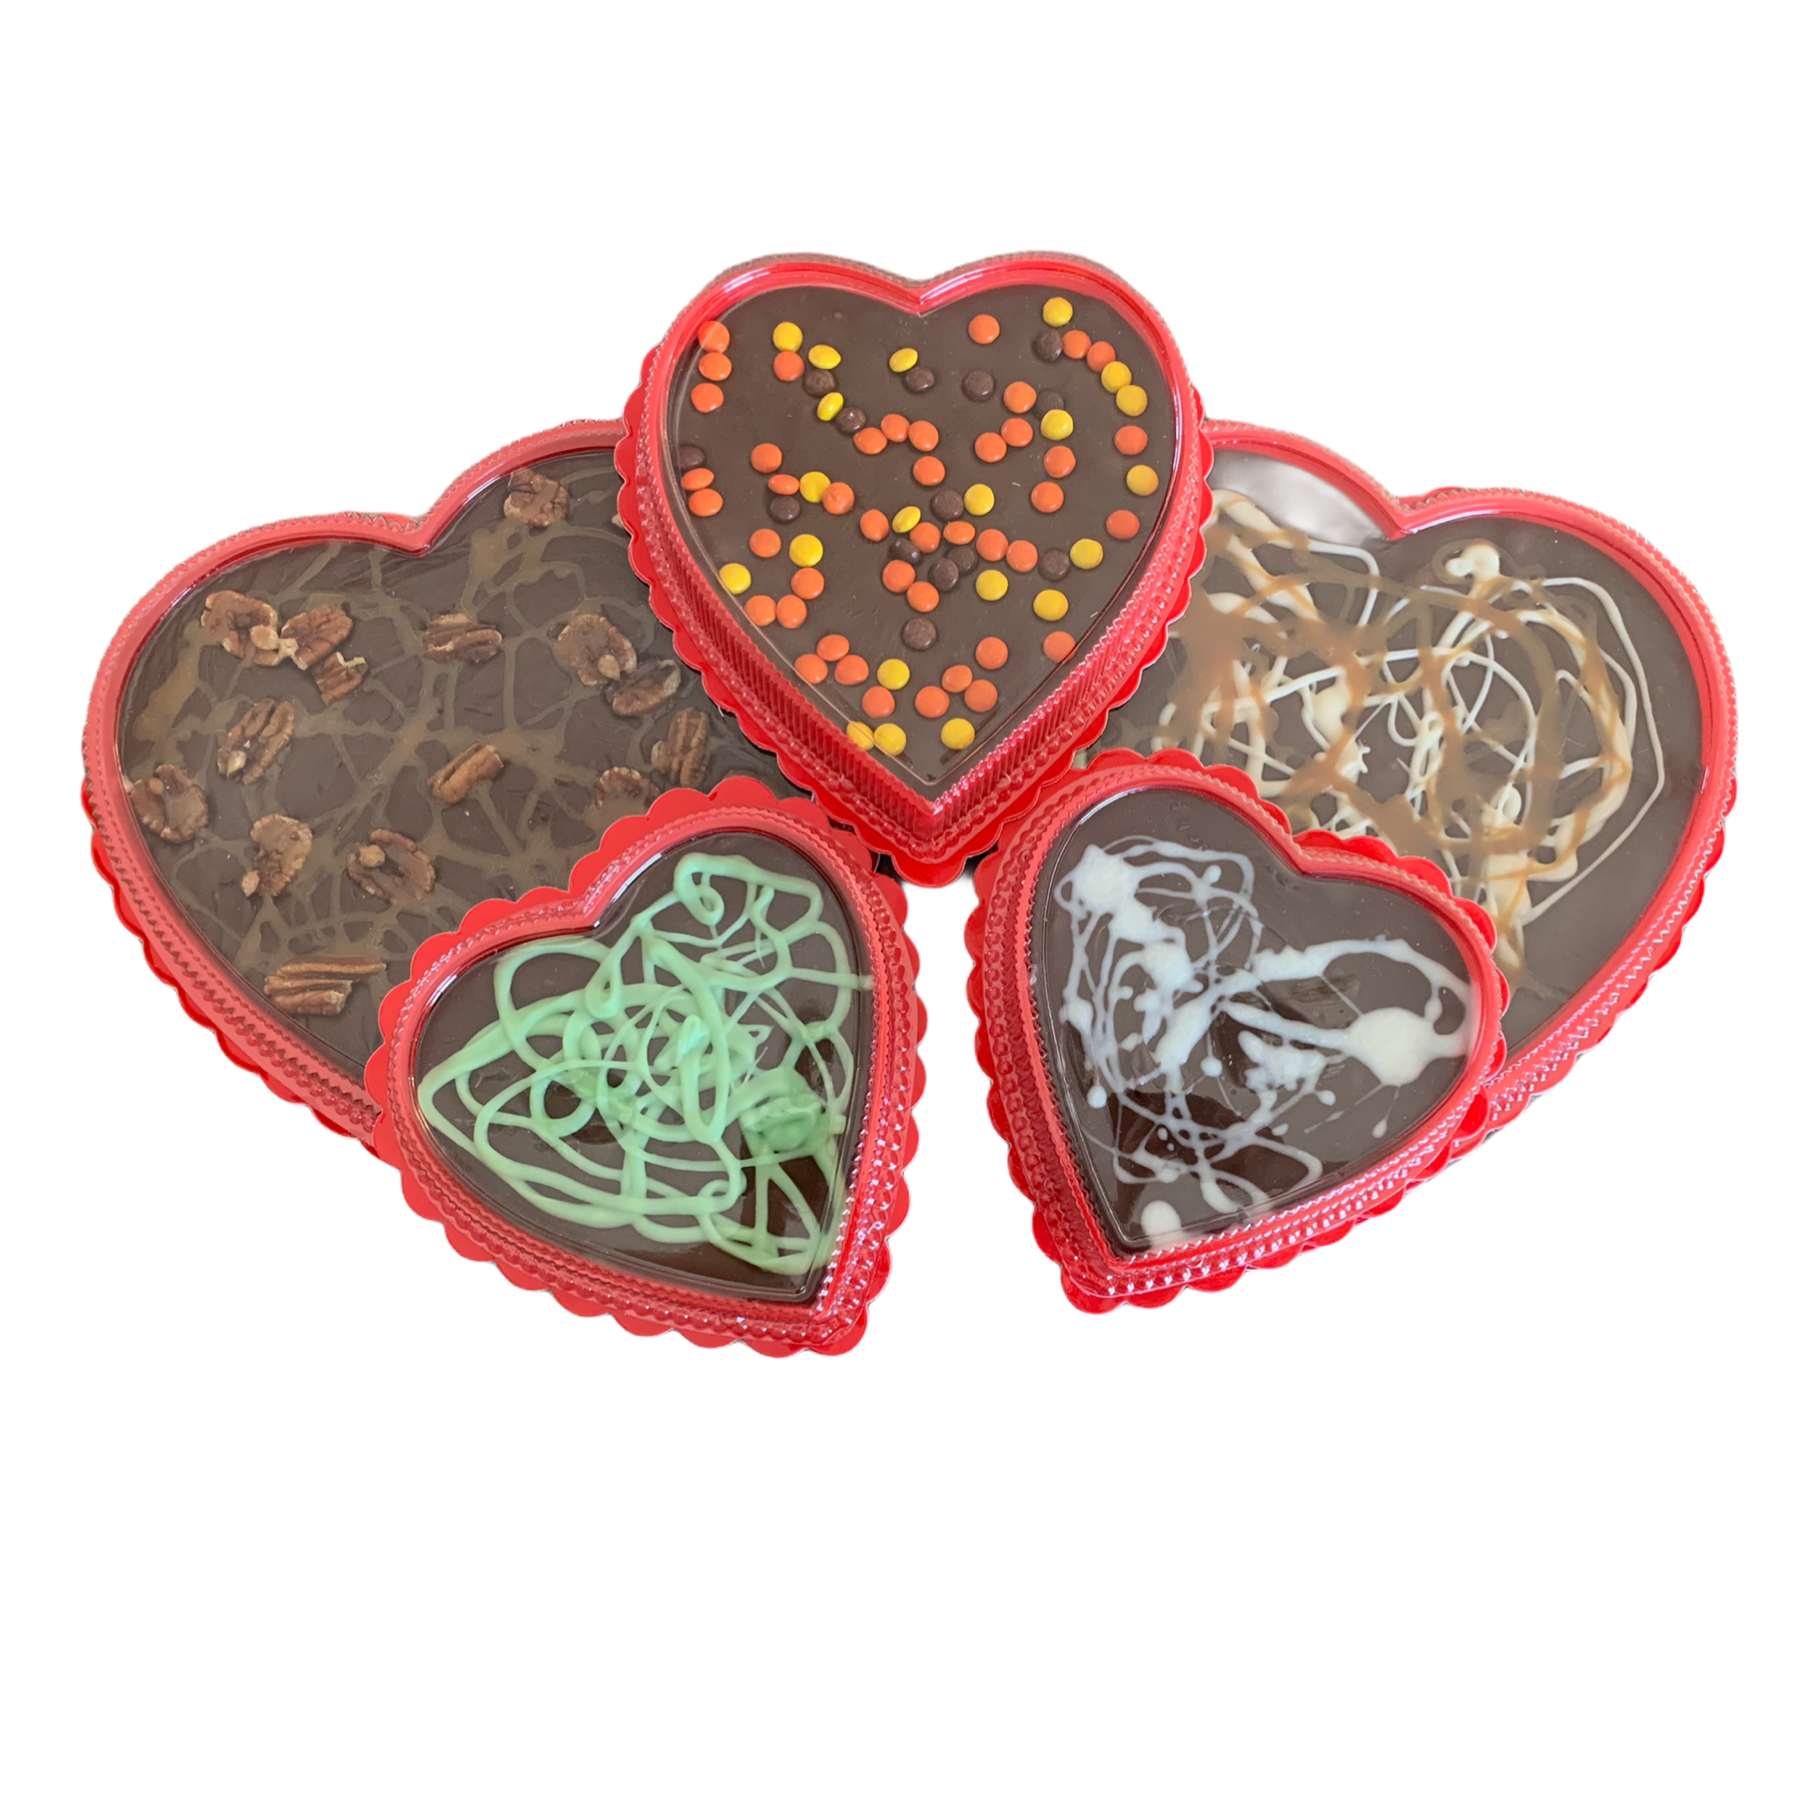 Gourmet Cream & Butter Fudge Hearts Wholesale